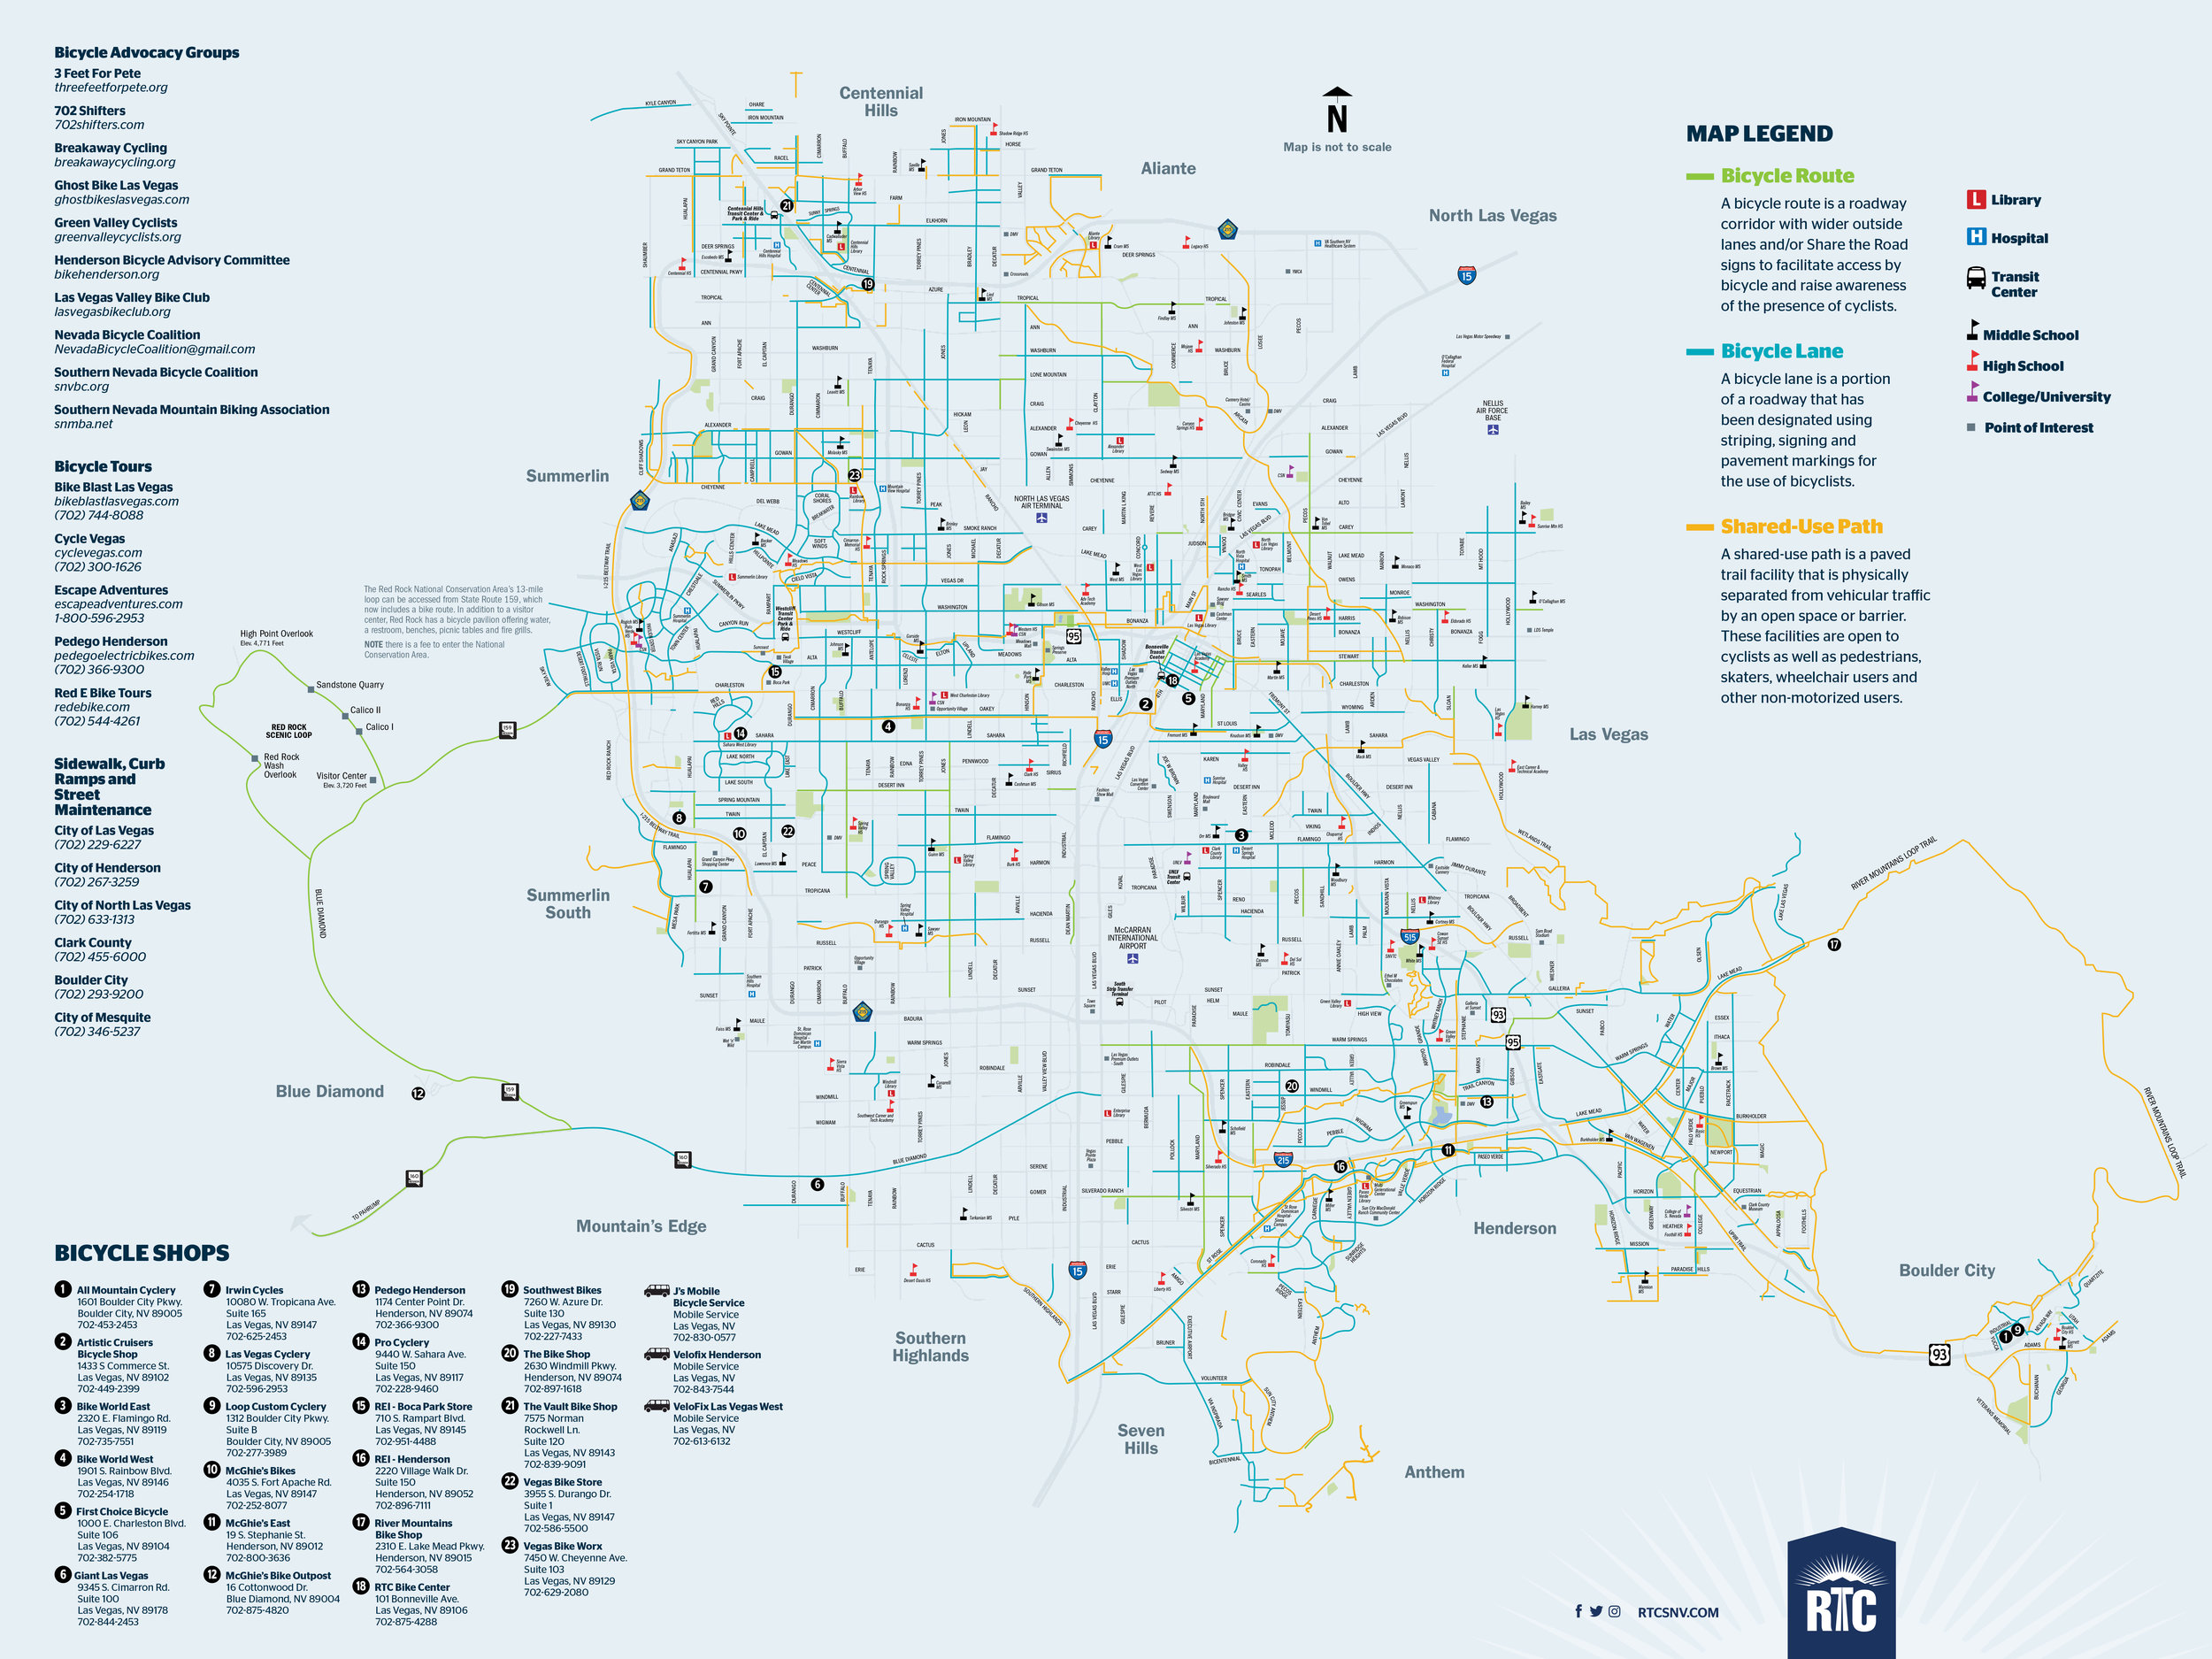 "The updated RTC Bike Map for Southern Nevada touts more than 1,000 miles of bike lanes, paved paths and shared roadways among other useful information. Of the total miles, about 36 percent cover off-street trails and sidewalks, and about 14 percent of these miles are ""high comfort"" facilities appropriate for all ages and abilities. Since the map was last printed in 2013, the miles of bike lanes, paths and routes grew 13 percent. And with more than 50,000 bikes carried monthly on RTC (Regional Transportation Commission of Southern Nevada) transit buses, the region truly is ""bike friendly."""